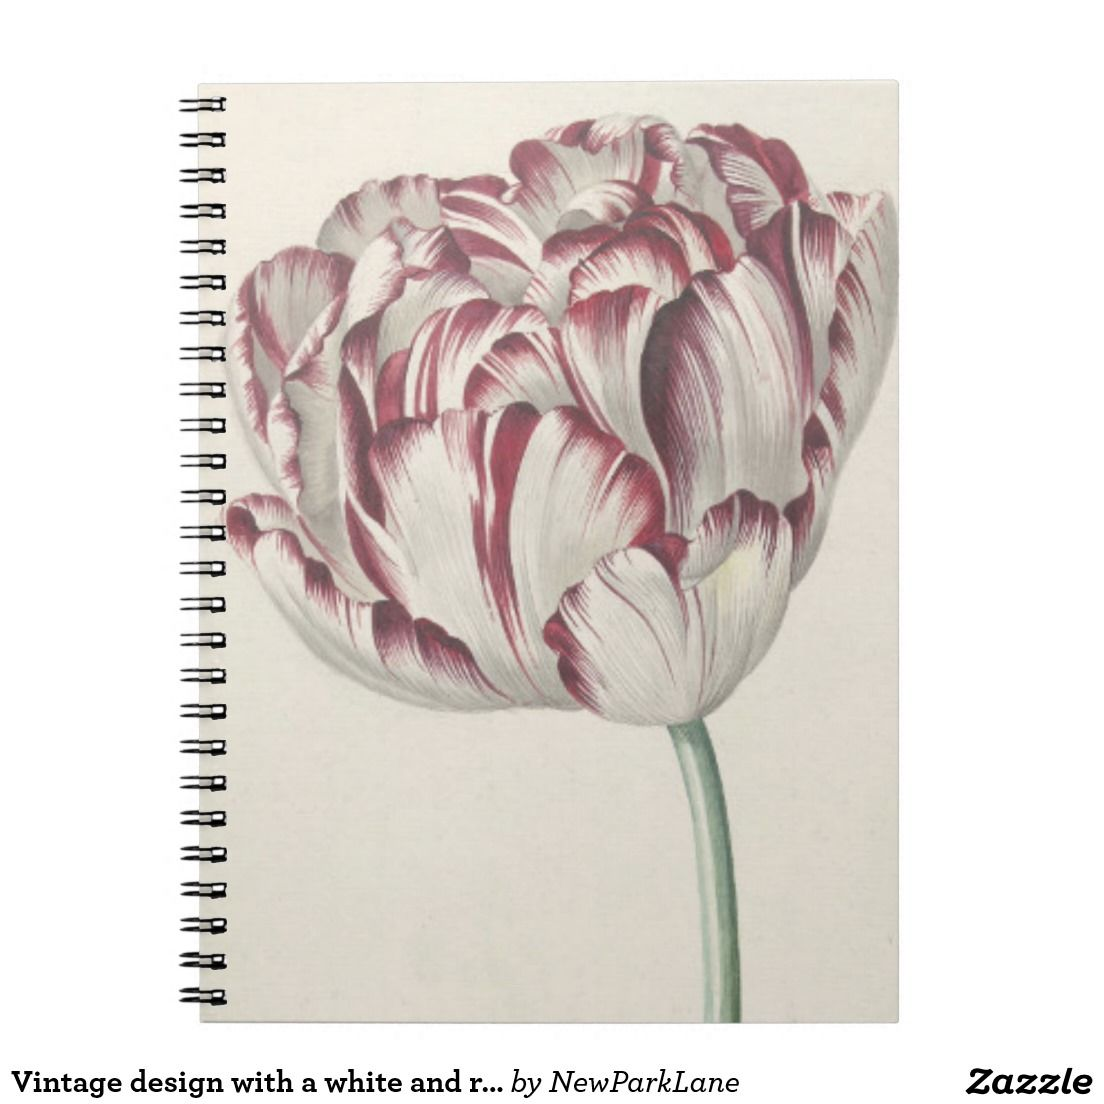 Notebook with vintage design with a white and red tulip  http://www.zazzle.com/vintage_design_with_a_white_and_red_tulip_notebook-130264158535528866?rf=238731775801296307